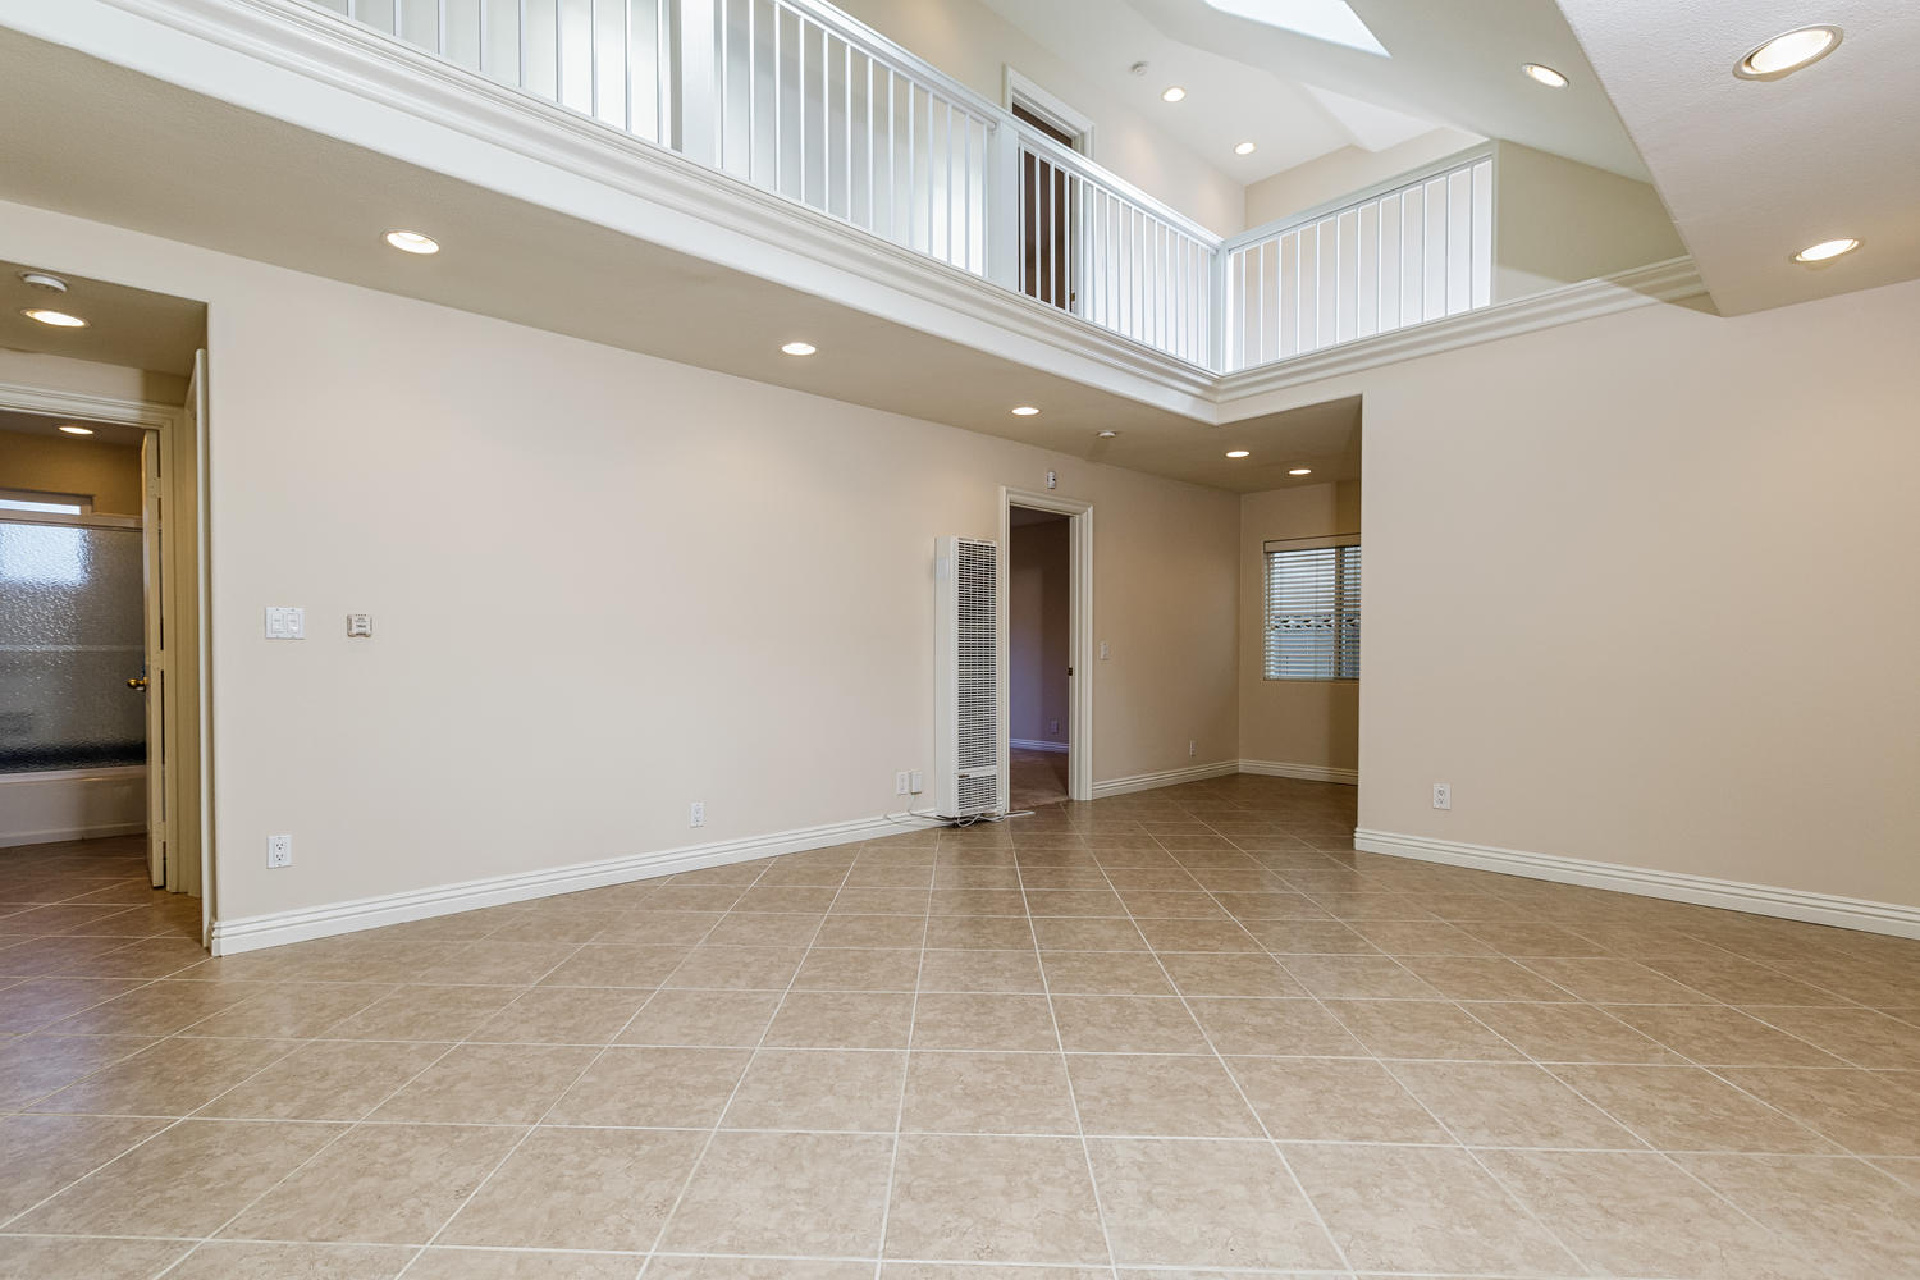 https://www.addressrealestate.com/media/images/blogs/38/2/b_4-1408-ocean-dr-oxnard-ca-93035-mls-size-002-10-living-area-1500x1000-72dpi.jpg